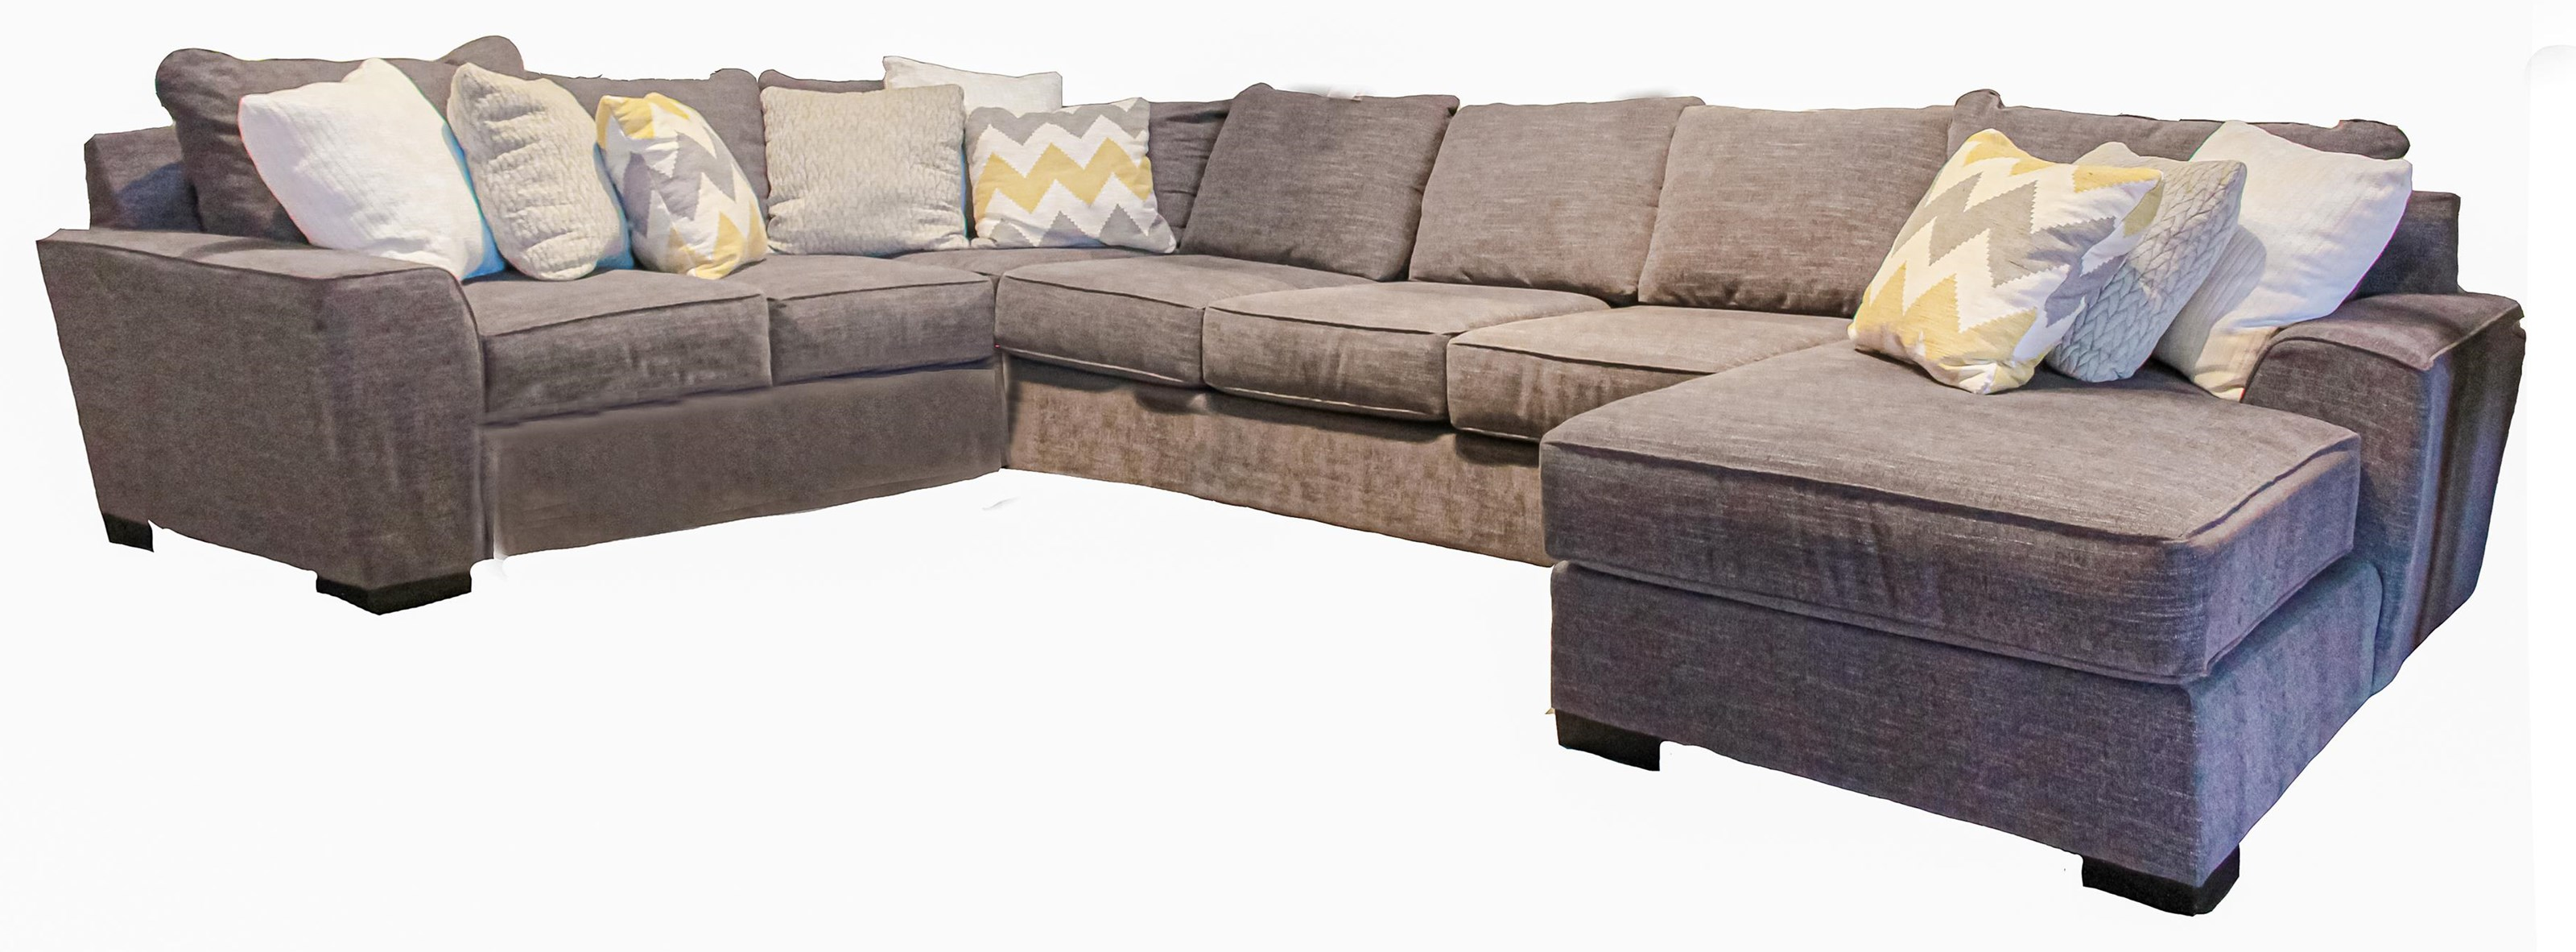 Desperado Curious Charcoal 3-Piece Sectional w/ Right Chaise by Michael Nicholas at Beck's Furniture